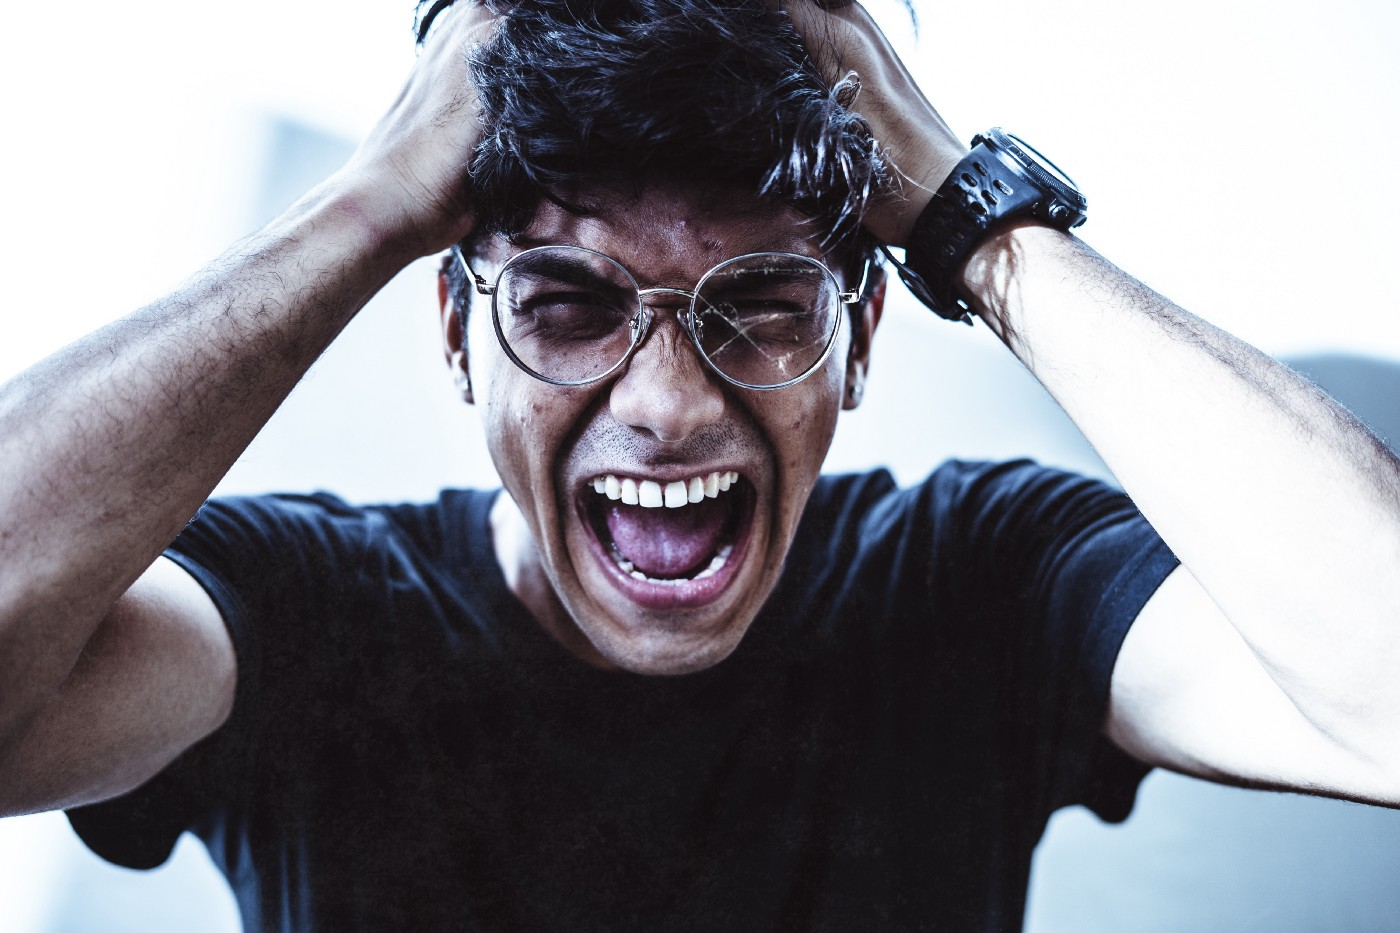 A young man is wearing glasses and a black shirt as he screams in anger for making the number one mistake of judgment after having a story go viral.